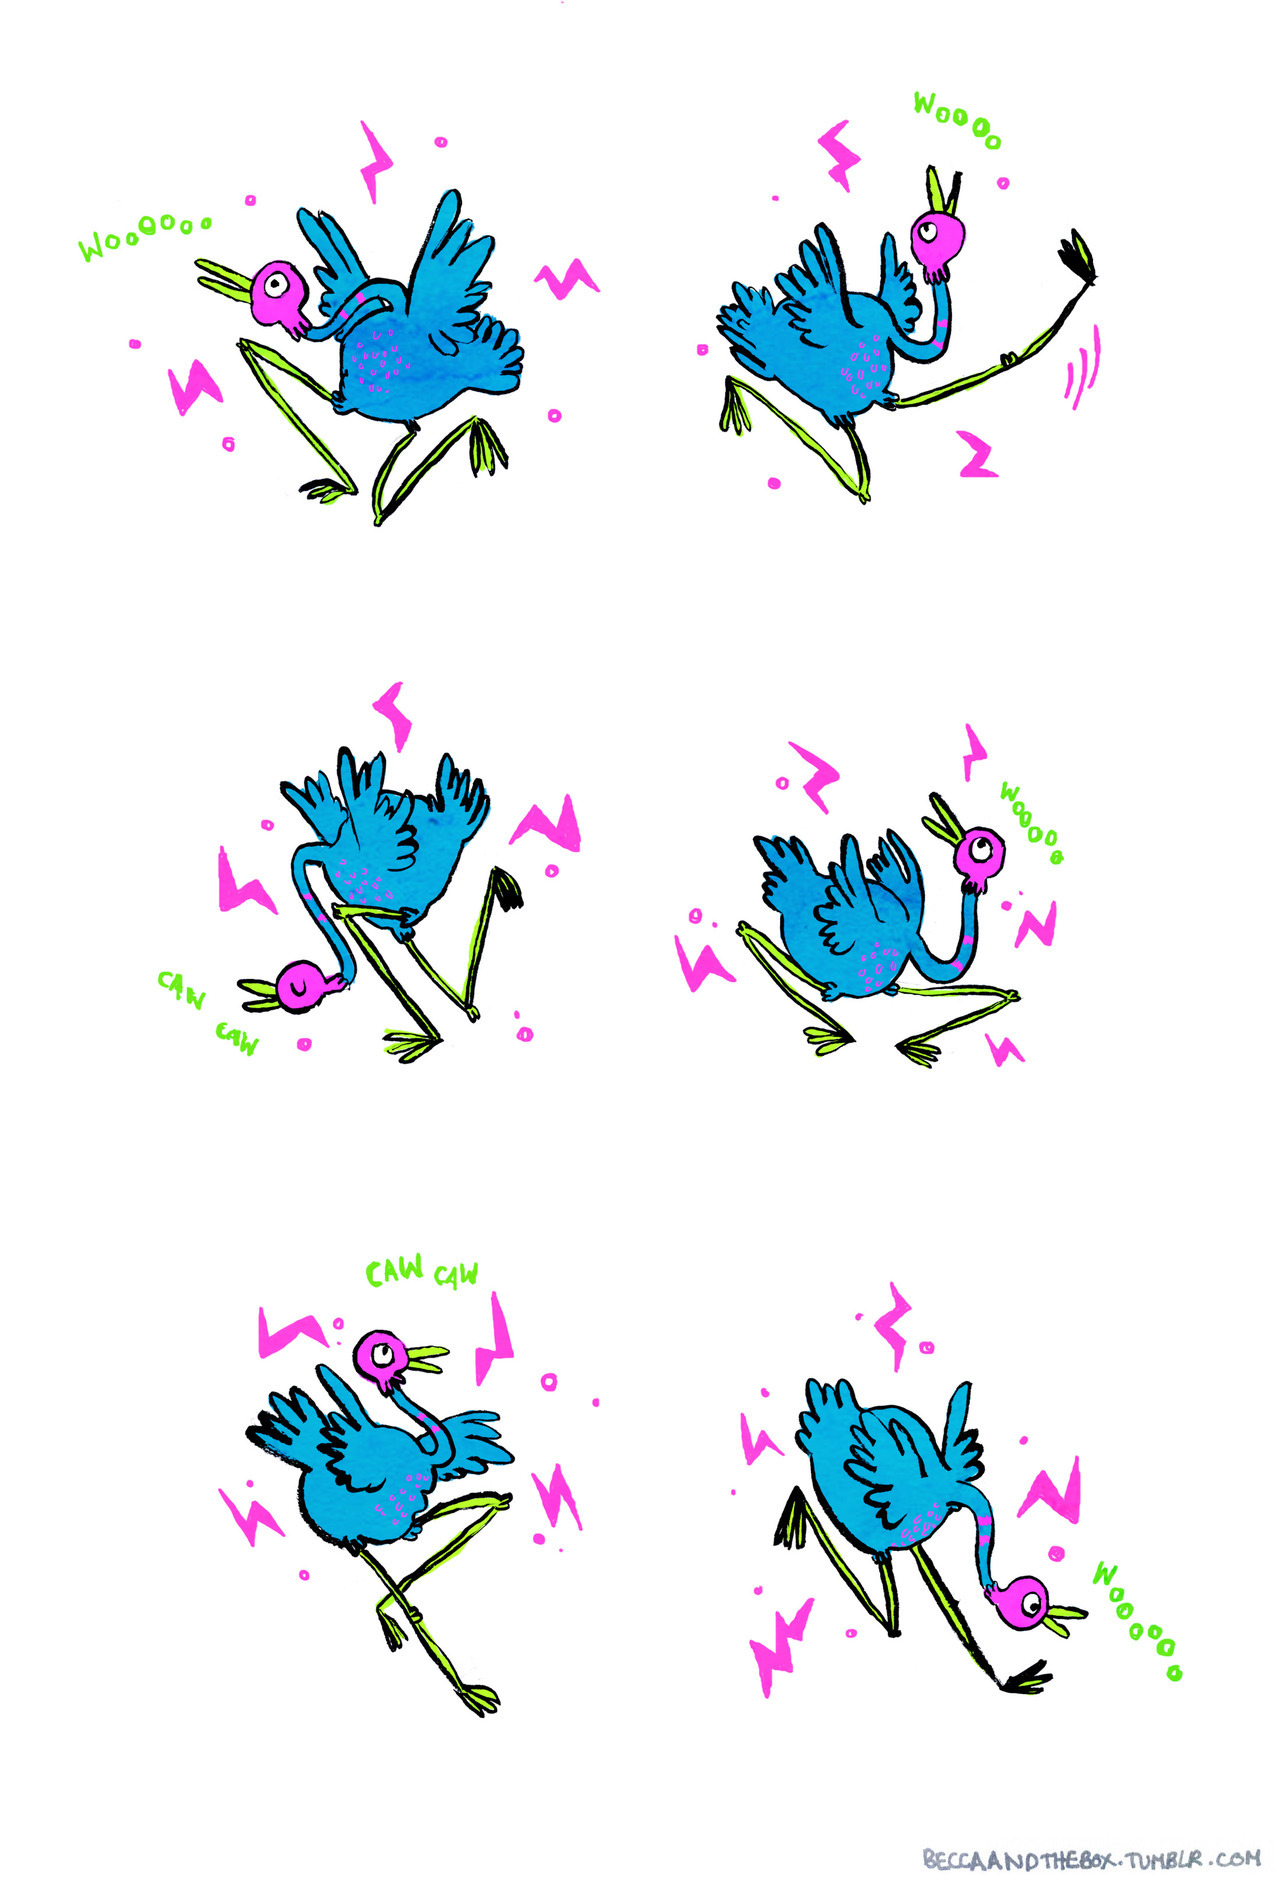 A comic about a dancing bird.